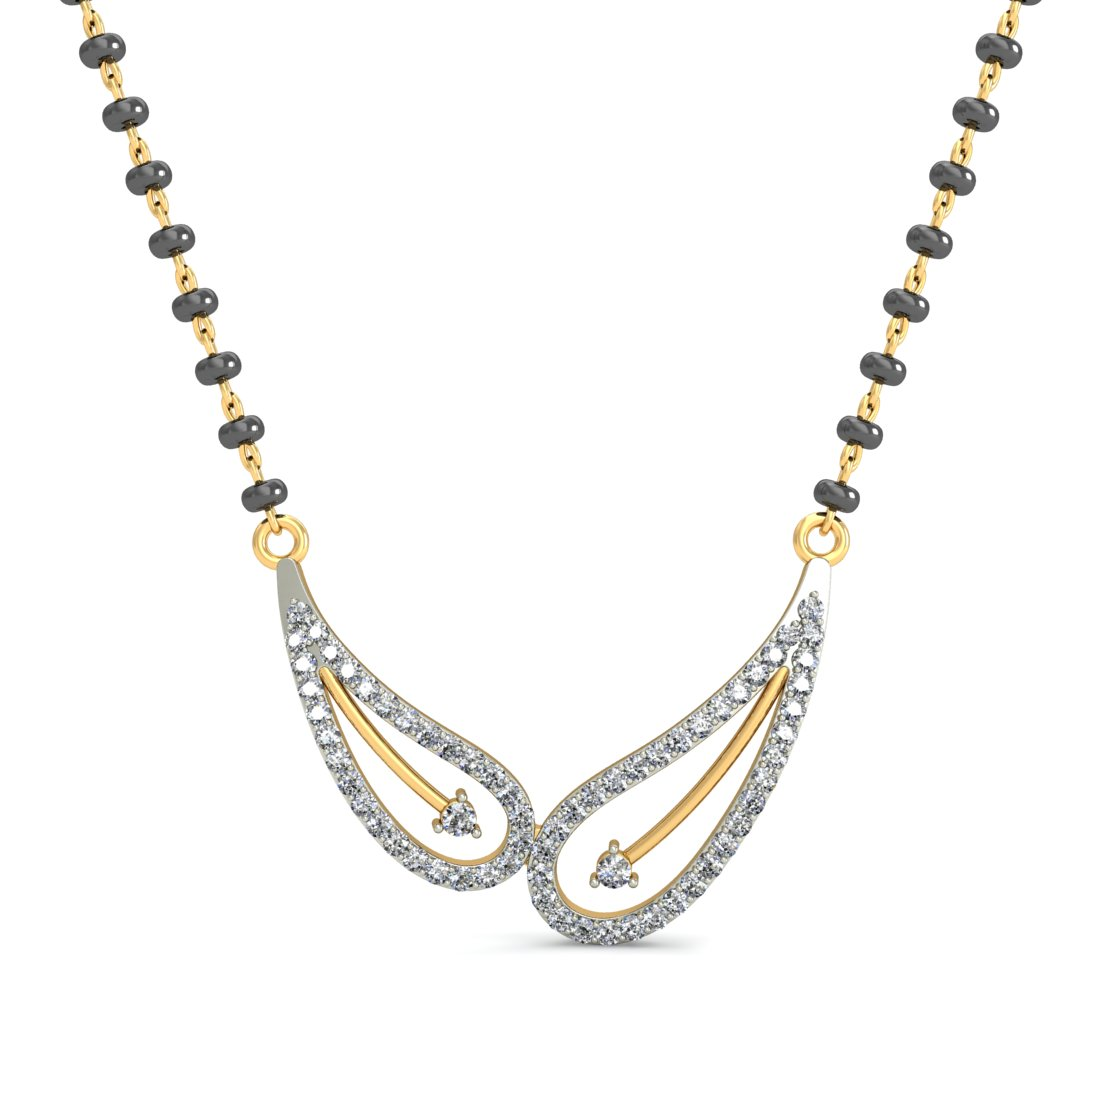 Compare Myraa JKAA007TN009  18 K Gold  Women's Mangalsutra at Compare Hatke